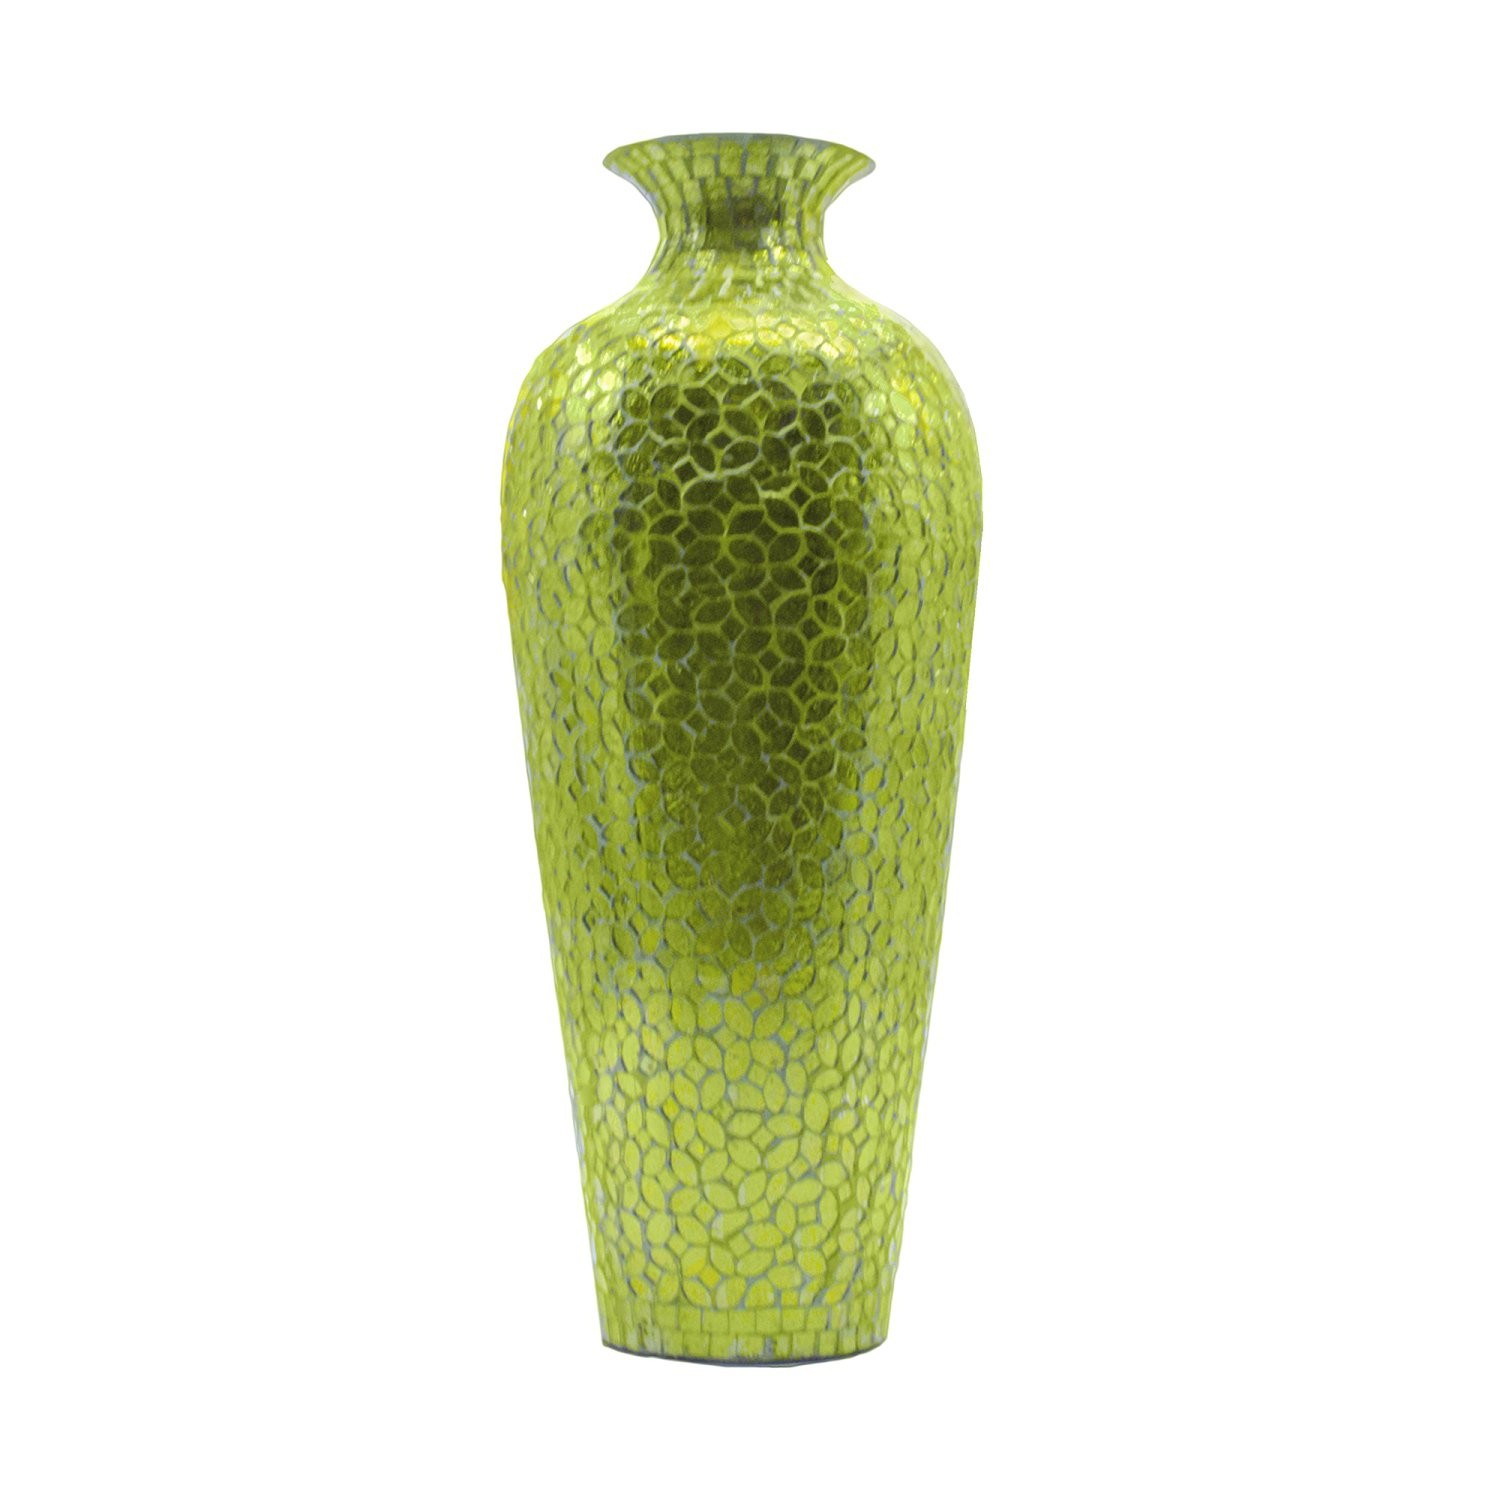 Green Vases For Sale - Vase and Cellar Image Avorcor.Com on pottery with metal, bookcase with metal, box with metal, fused glass with metal, glass lamp shade with metal,